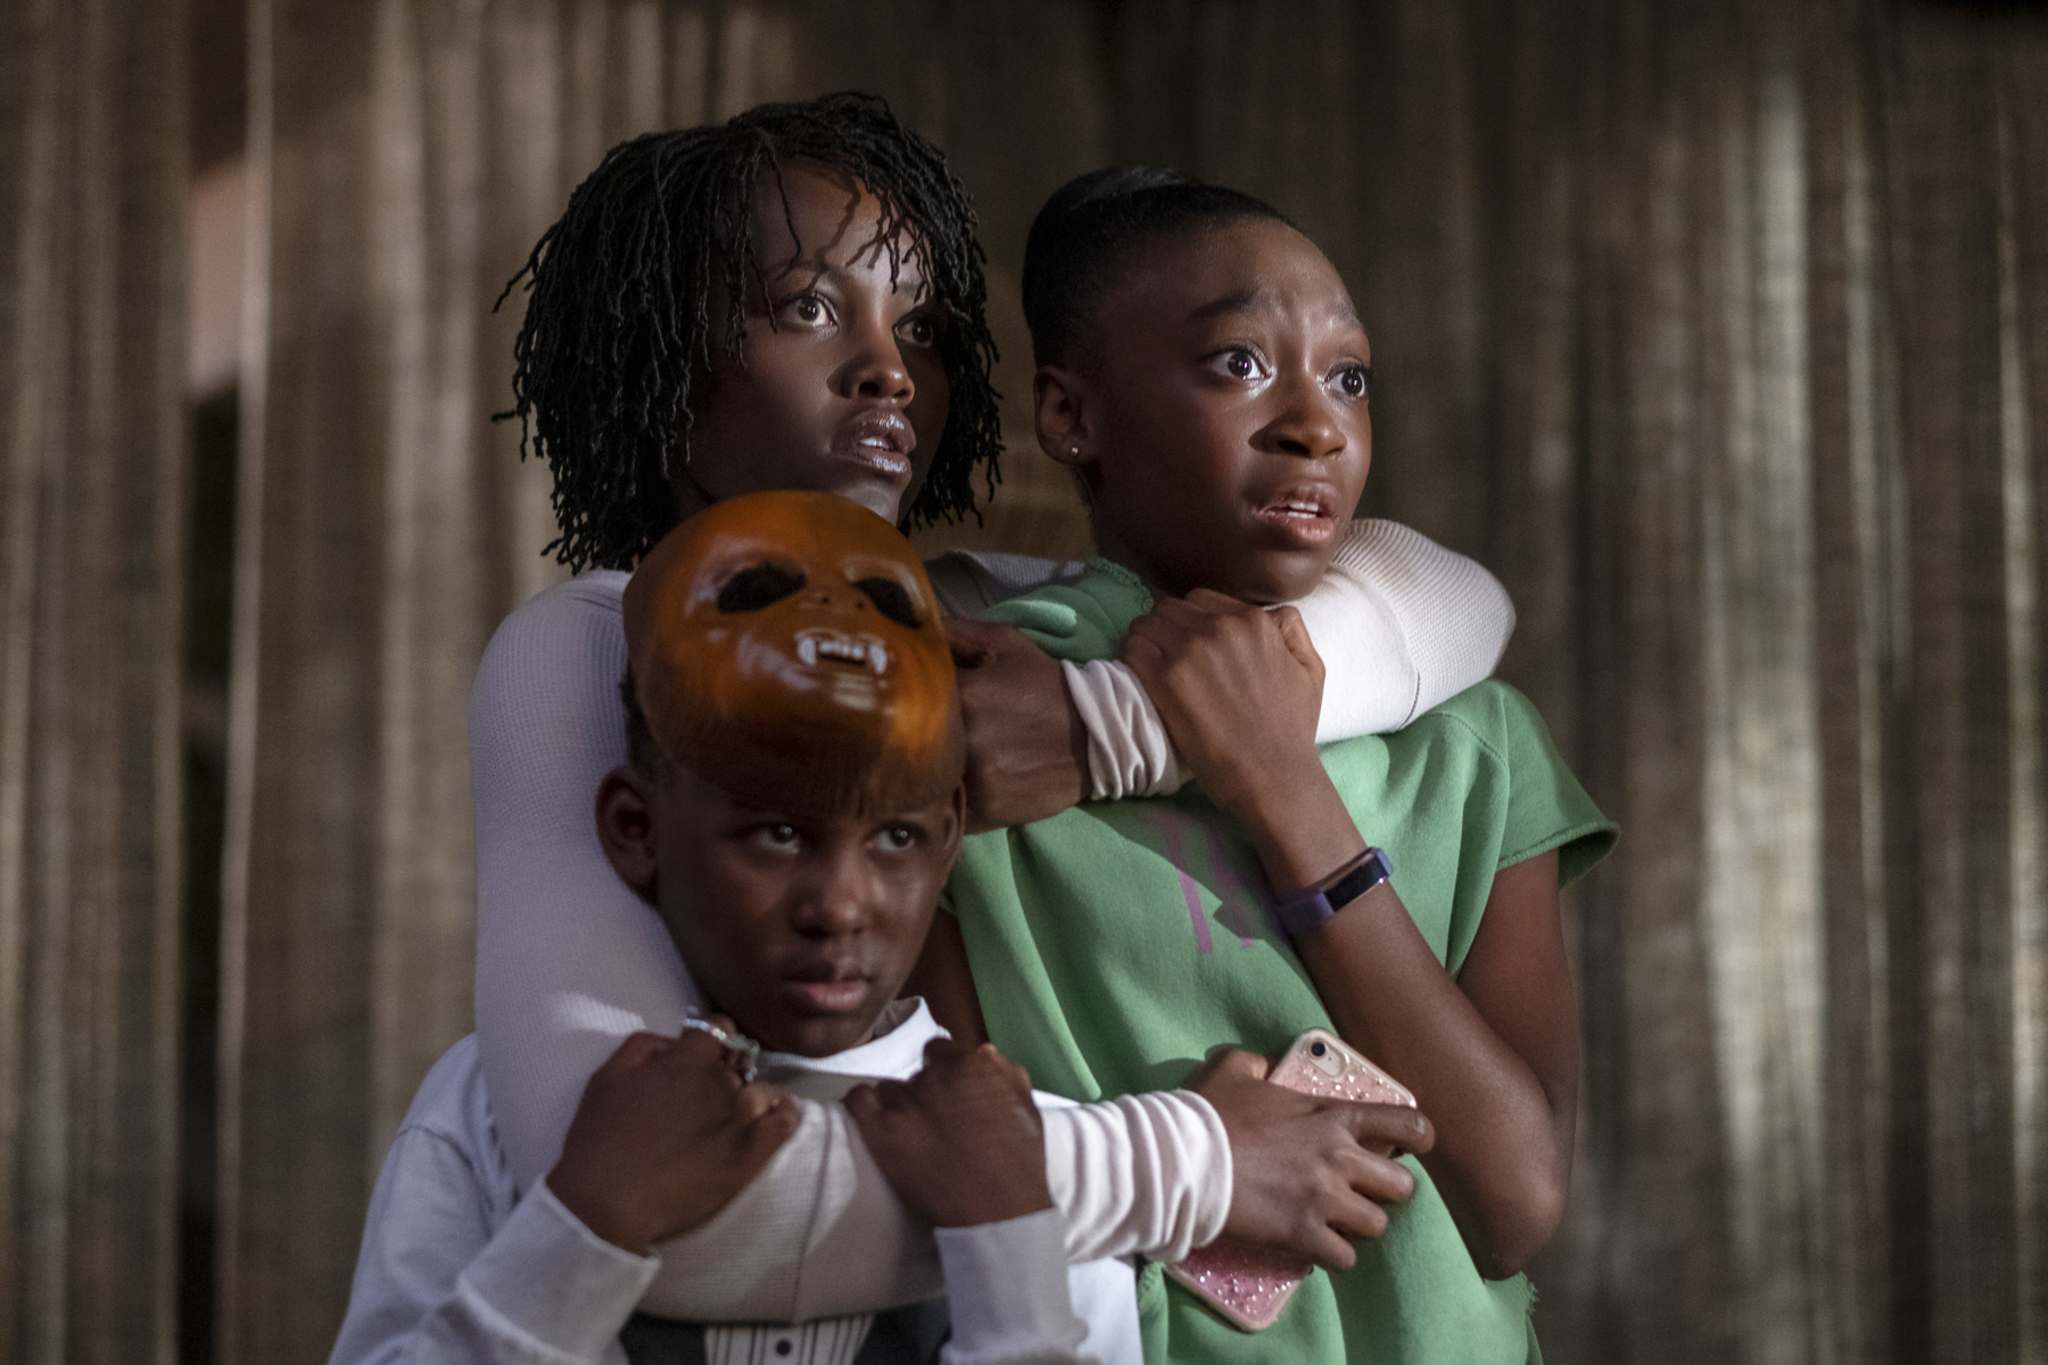 Evan Alex (from left), Lupita Nyong&rsquo;o and Shahadi Wright Joseph in a scene from Us. (Claudette Barius / Universal Pictures) </p>